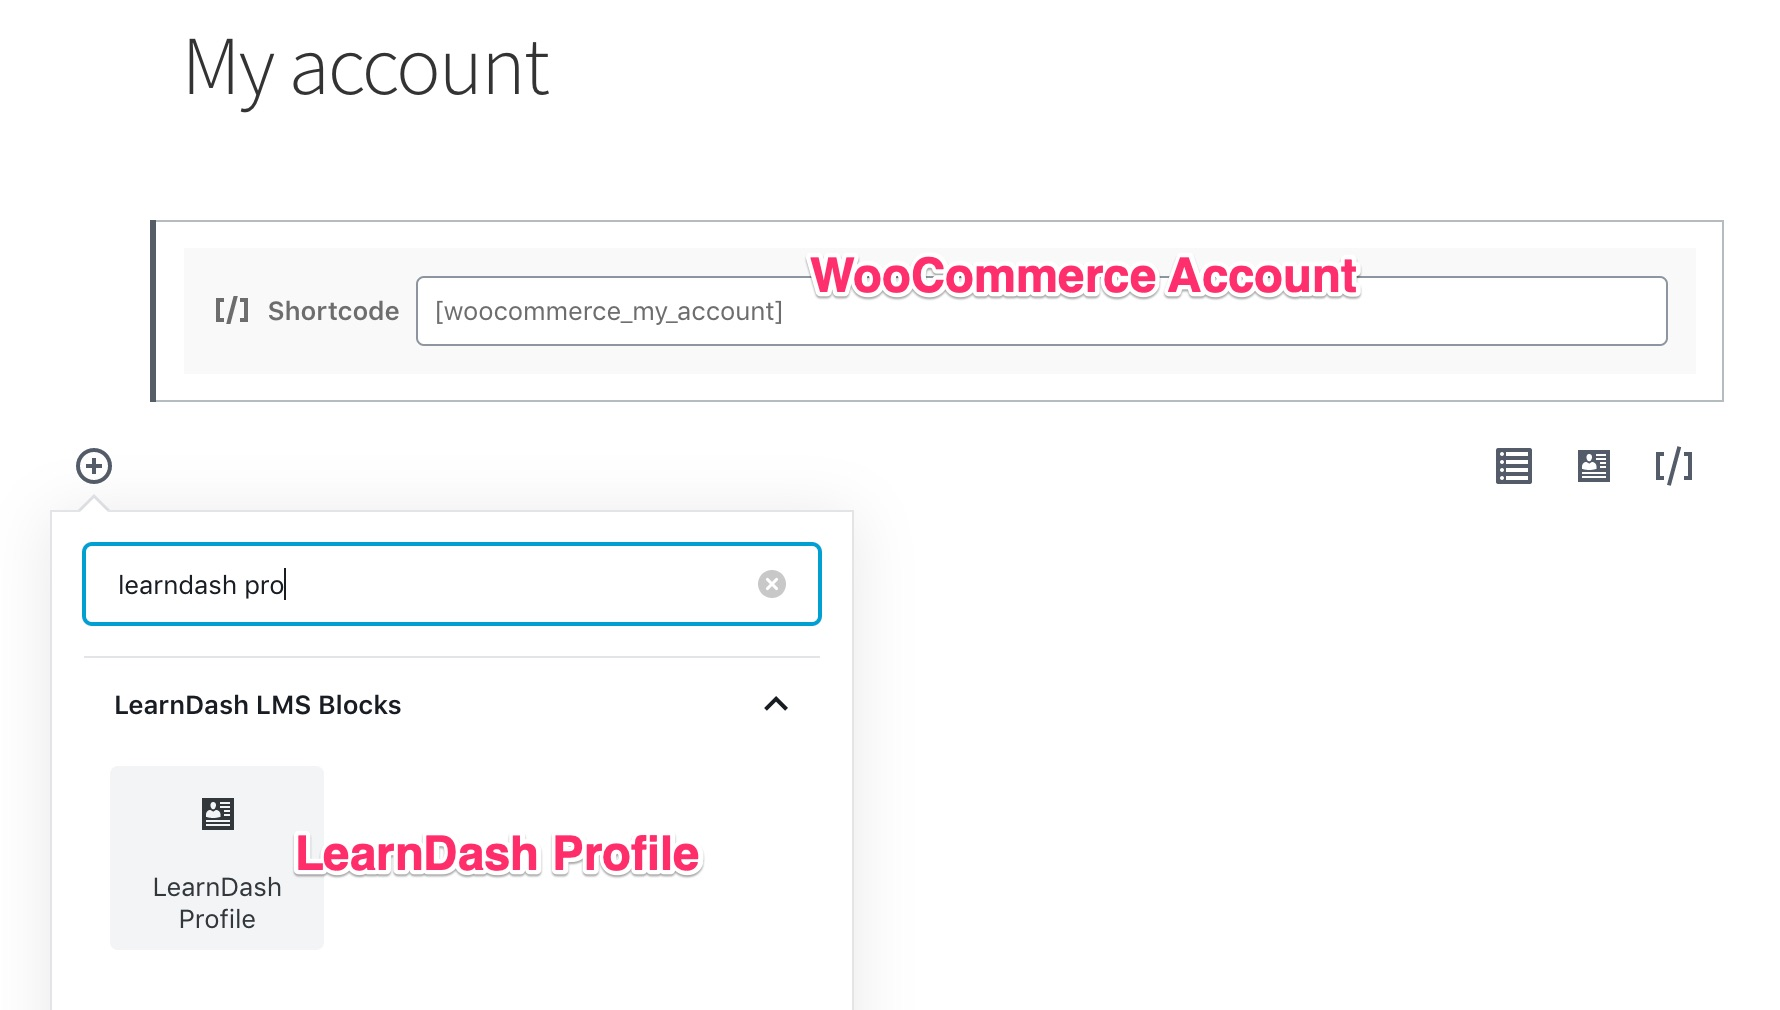 Inserting WooCommerce account & LearnDash profile blocks